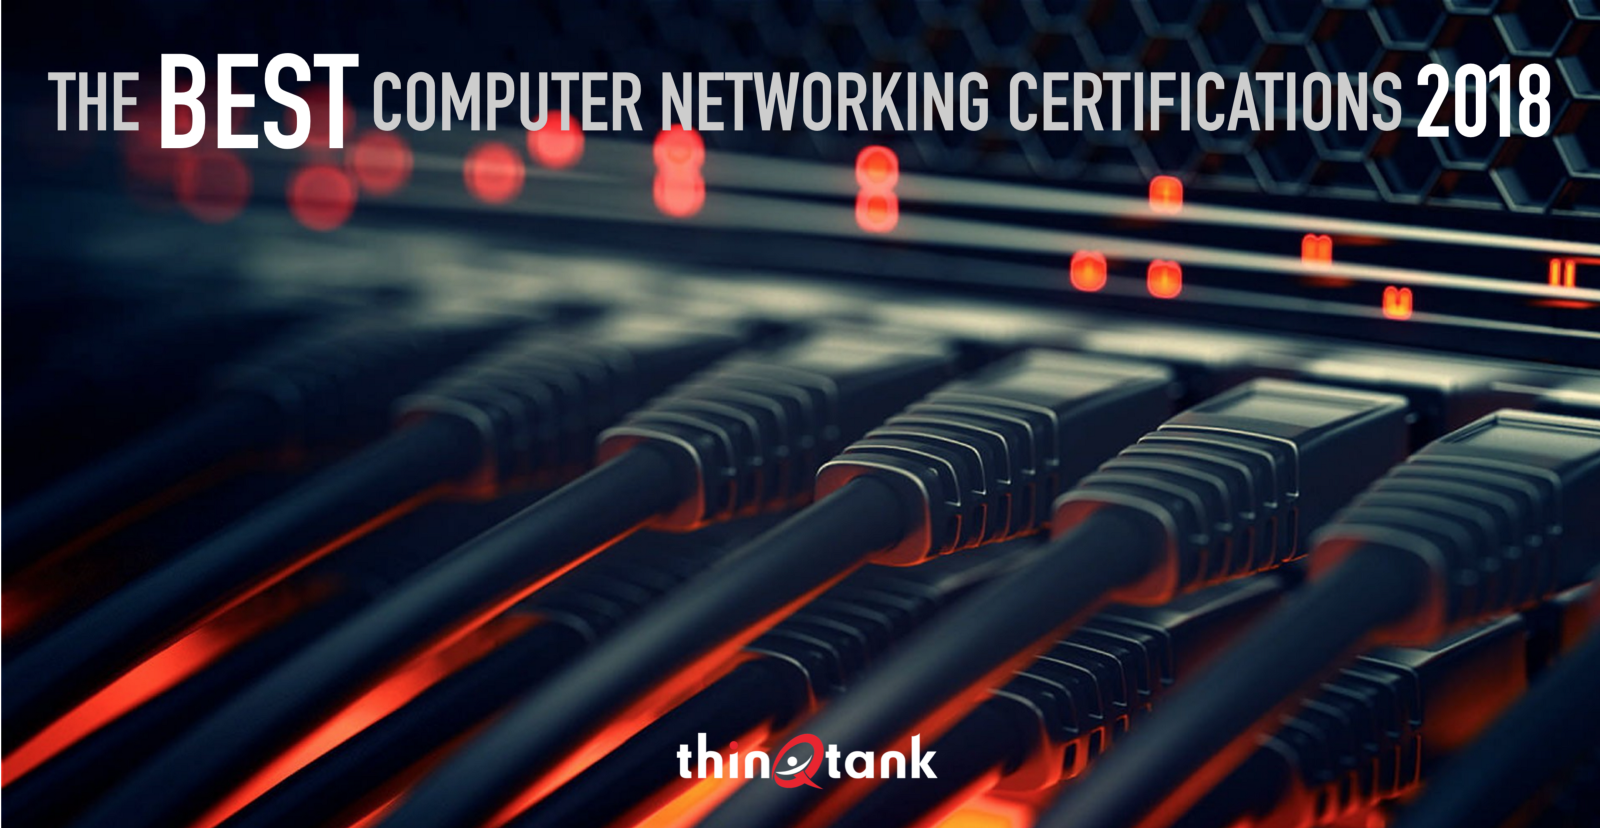 The Best Computer Networking Certifications For 2018